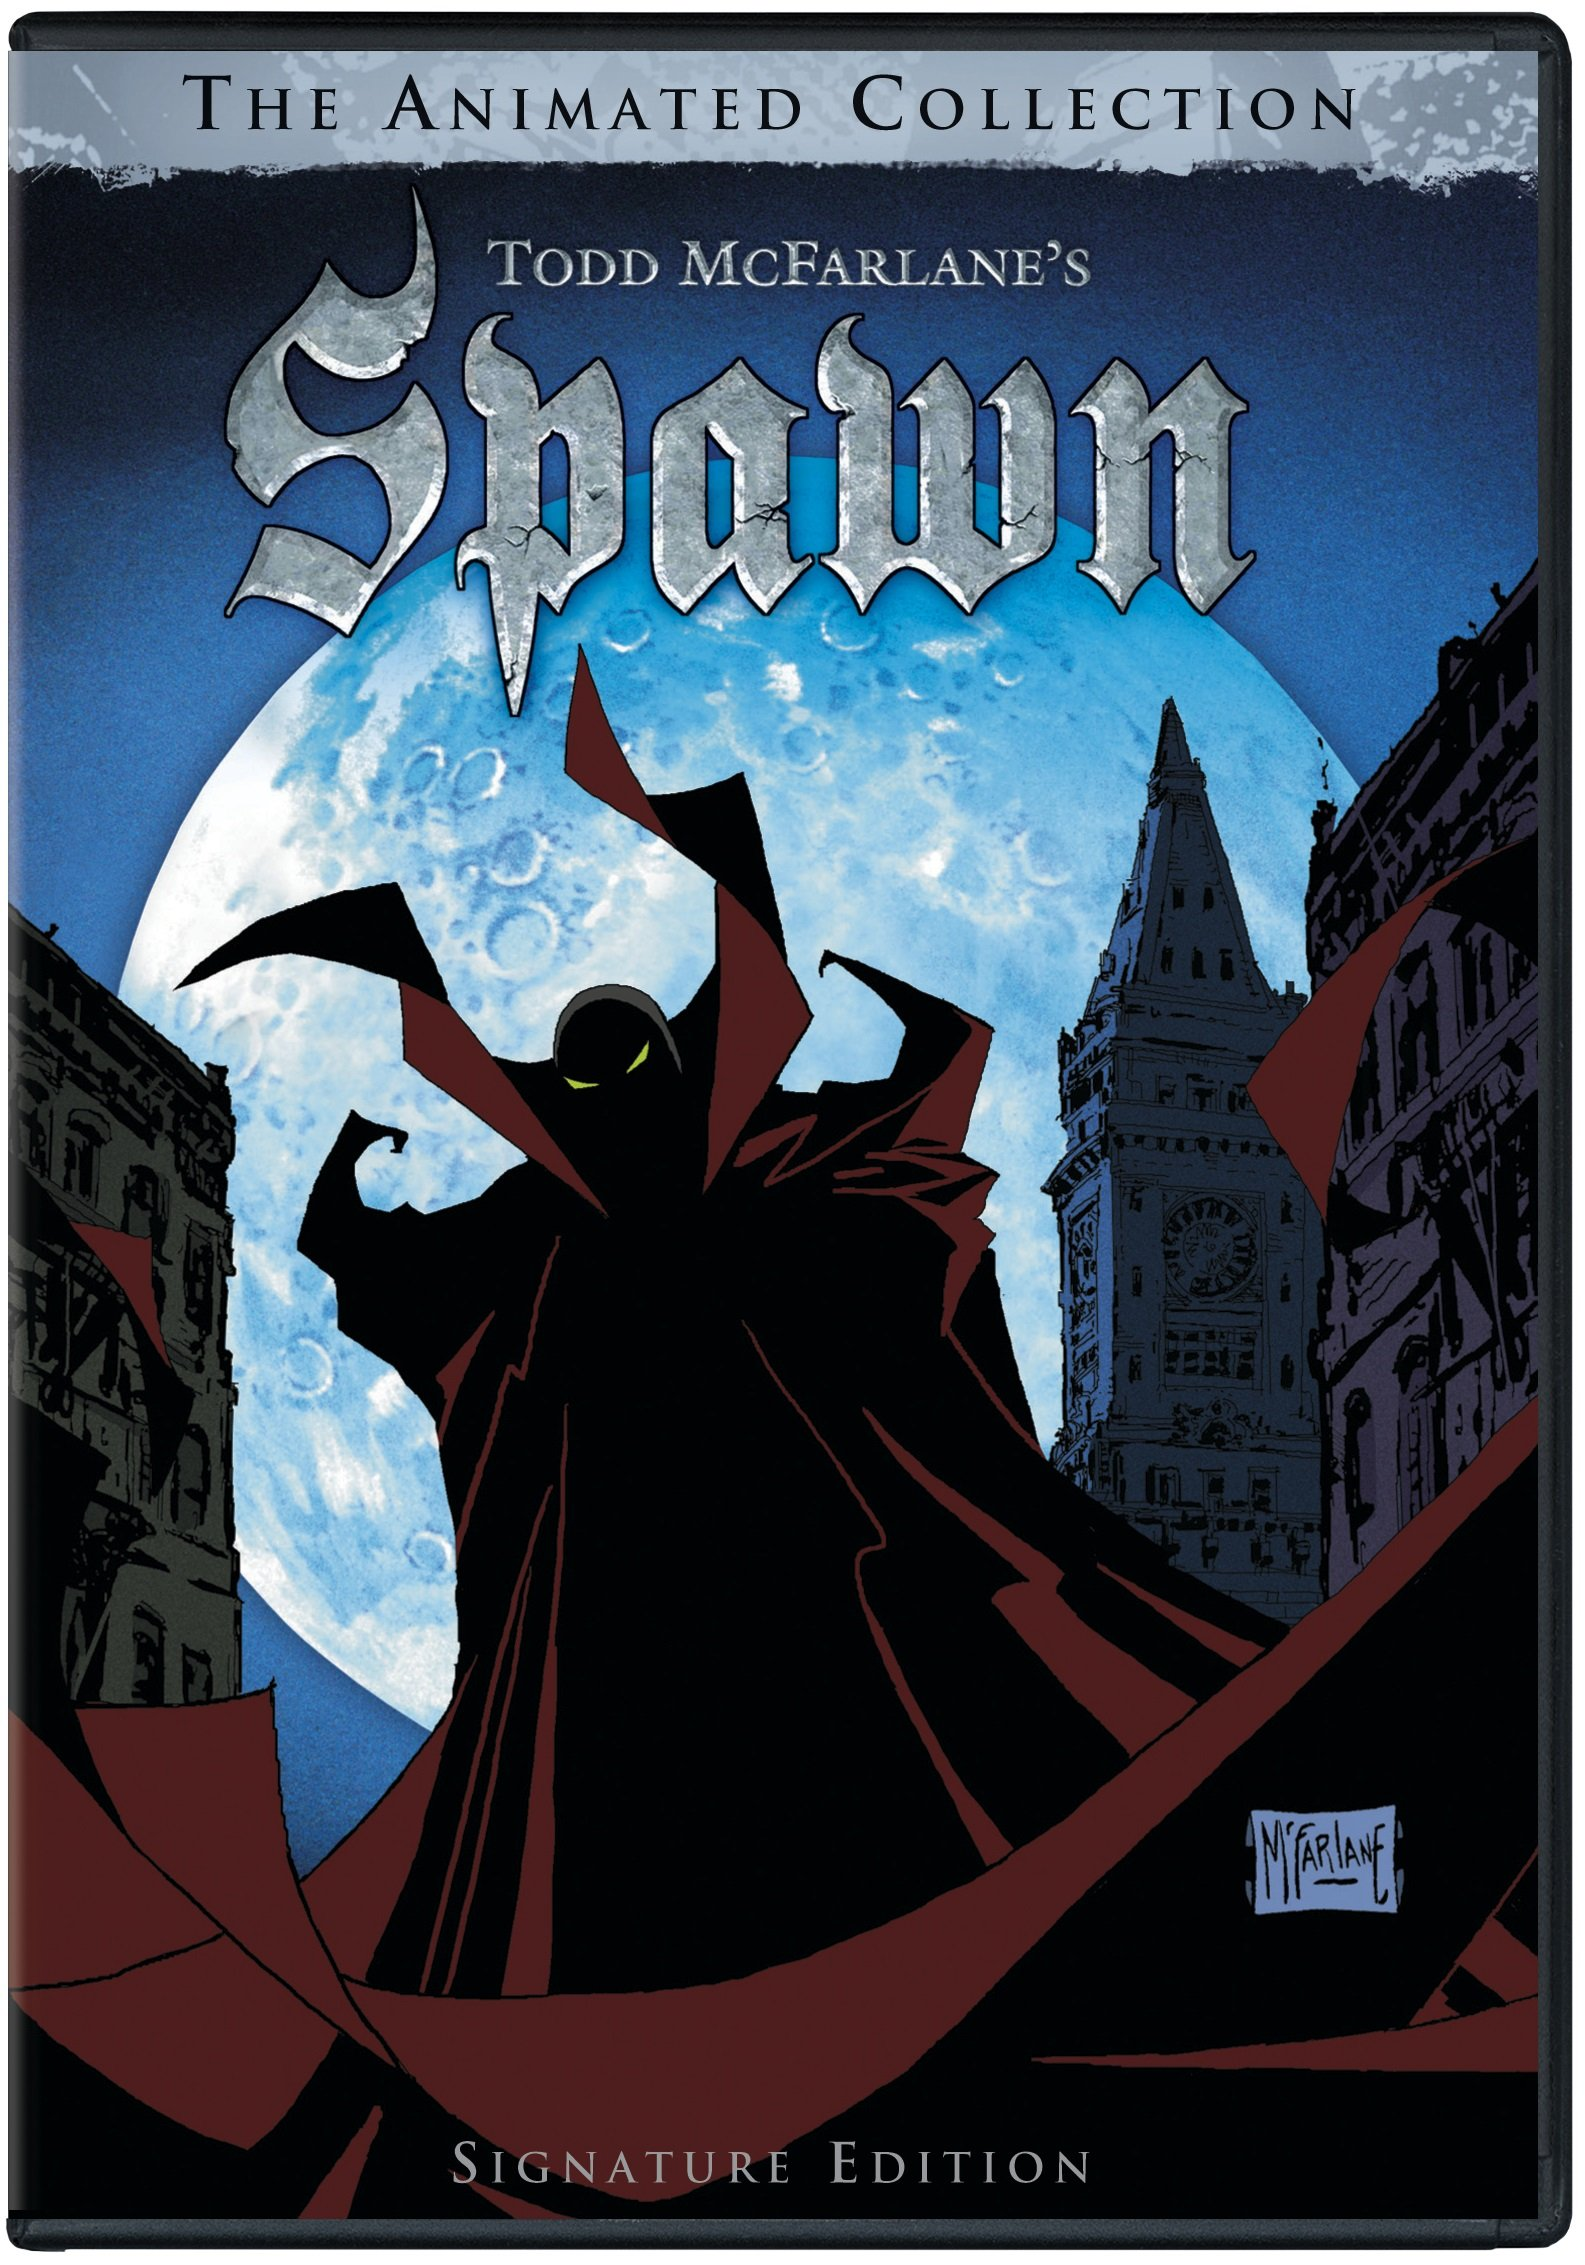 DVD : Todd McFarlane's Spawn: The Animated Collection (Full Frame, Remastered, Boxed Set, Digital Theater System, AC-3)